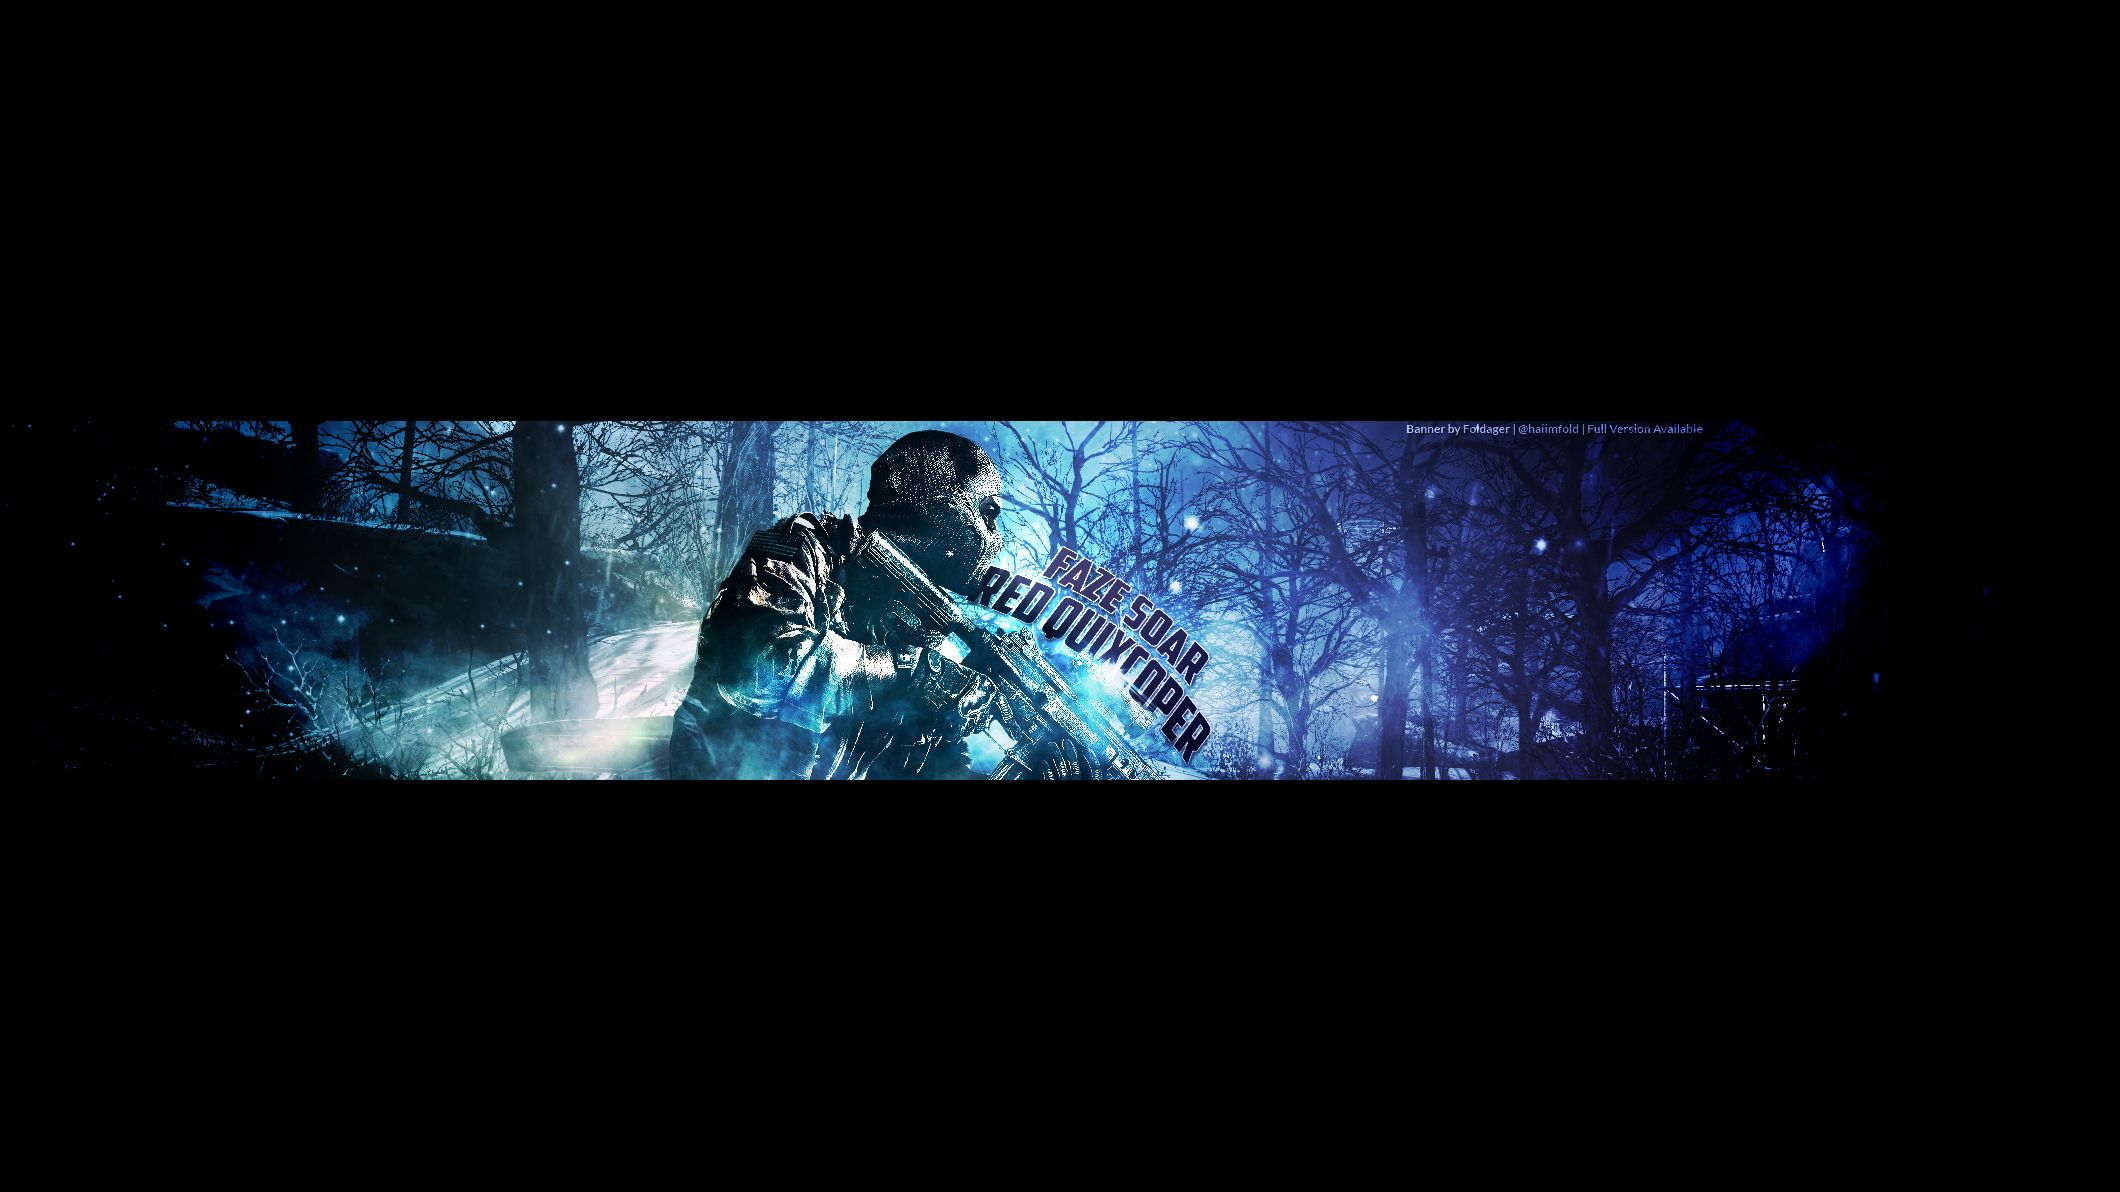 Youtube Banner Template No Text Unique 13 Best S Of Channel Banner No Text Banner No Text Youtube Banner Template Youtube Banners Banner Template